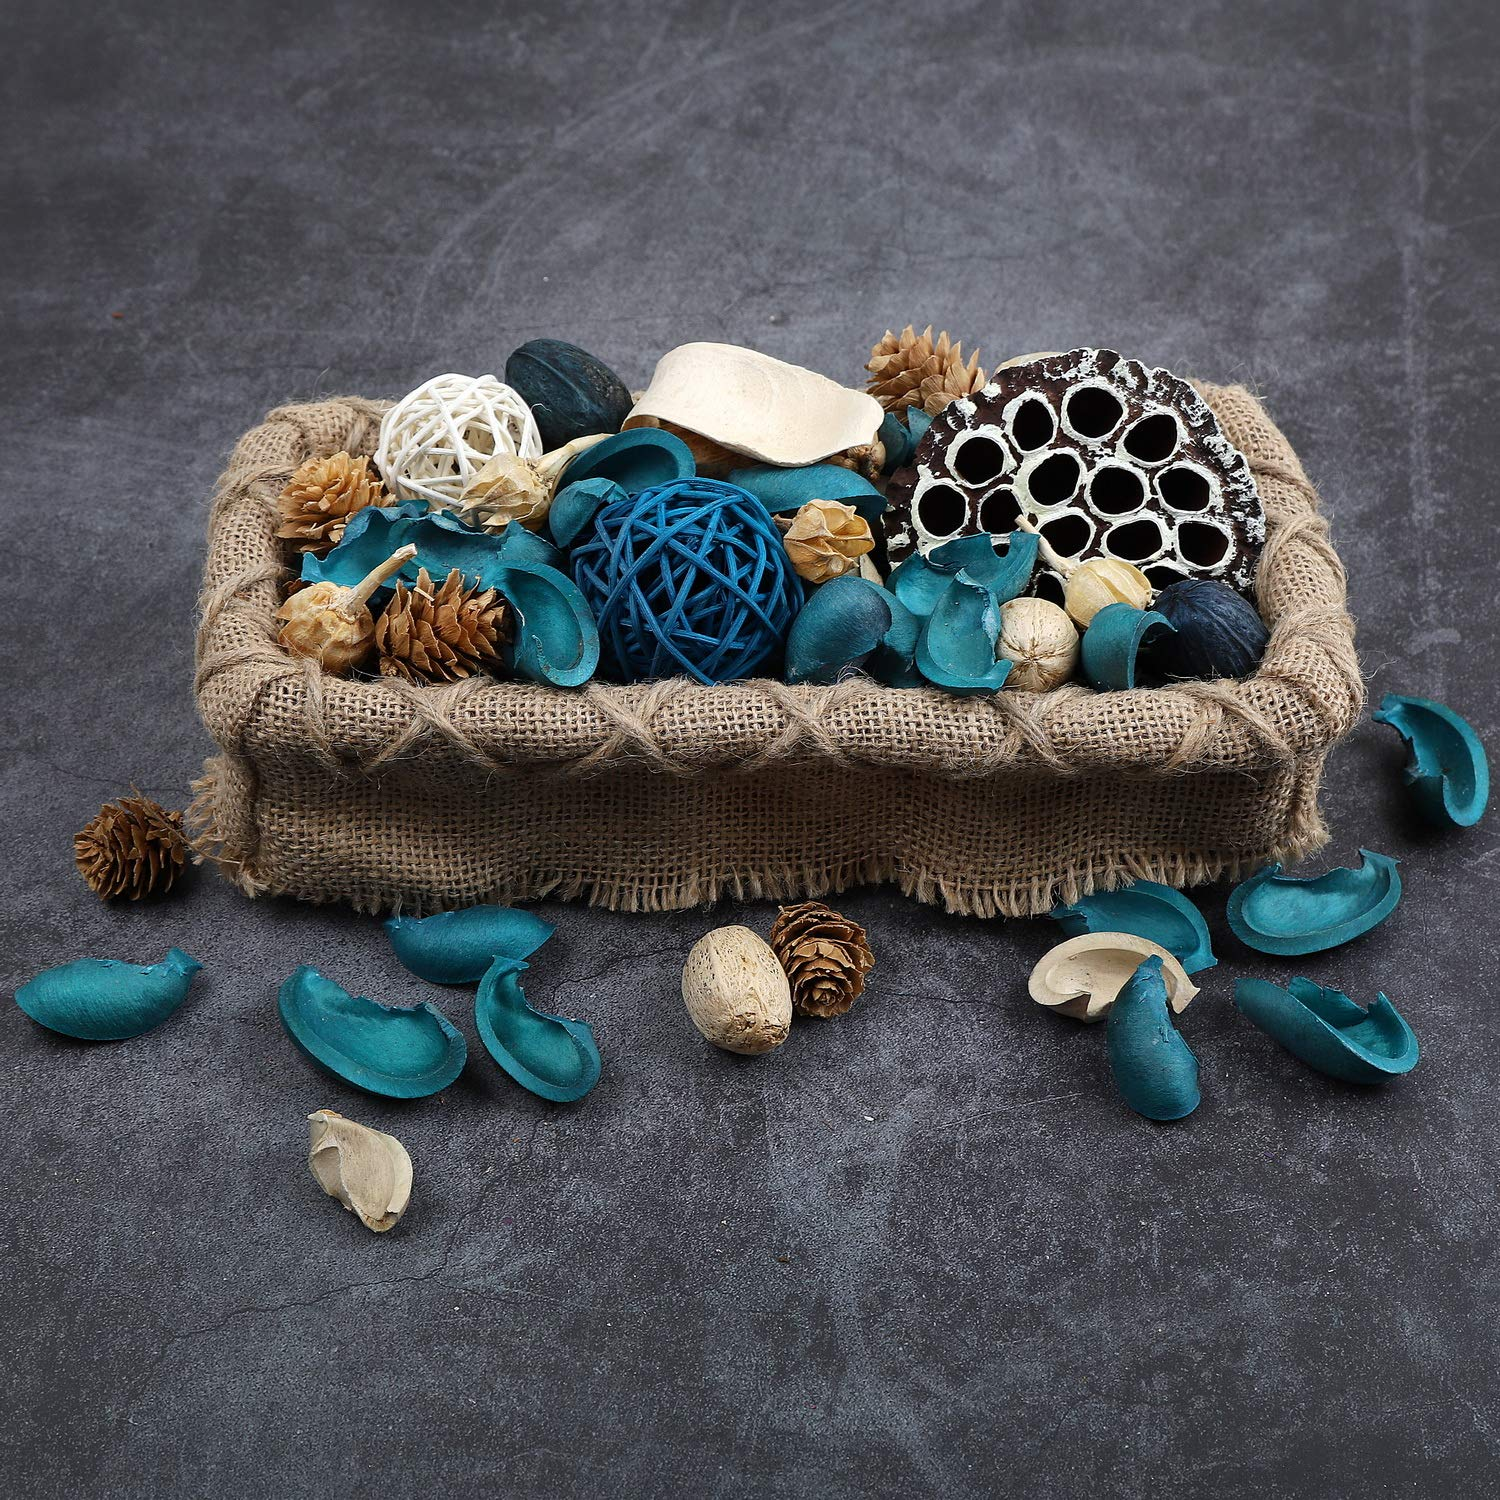 Qingbei Rina Ocean Scent Summer Potpourri Bag Decorative Perfume Sachet, Rattan Balls Lotus Pods Pine Cones Dried Flowers and Plants, 9.9 Ounce Turquoise Blue by Qingbei Rina (Image #7)